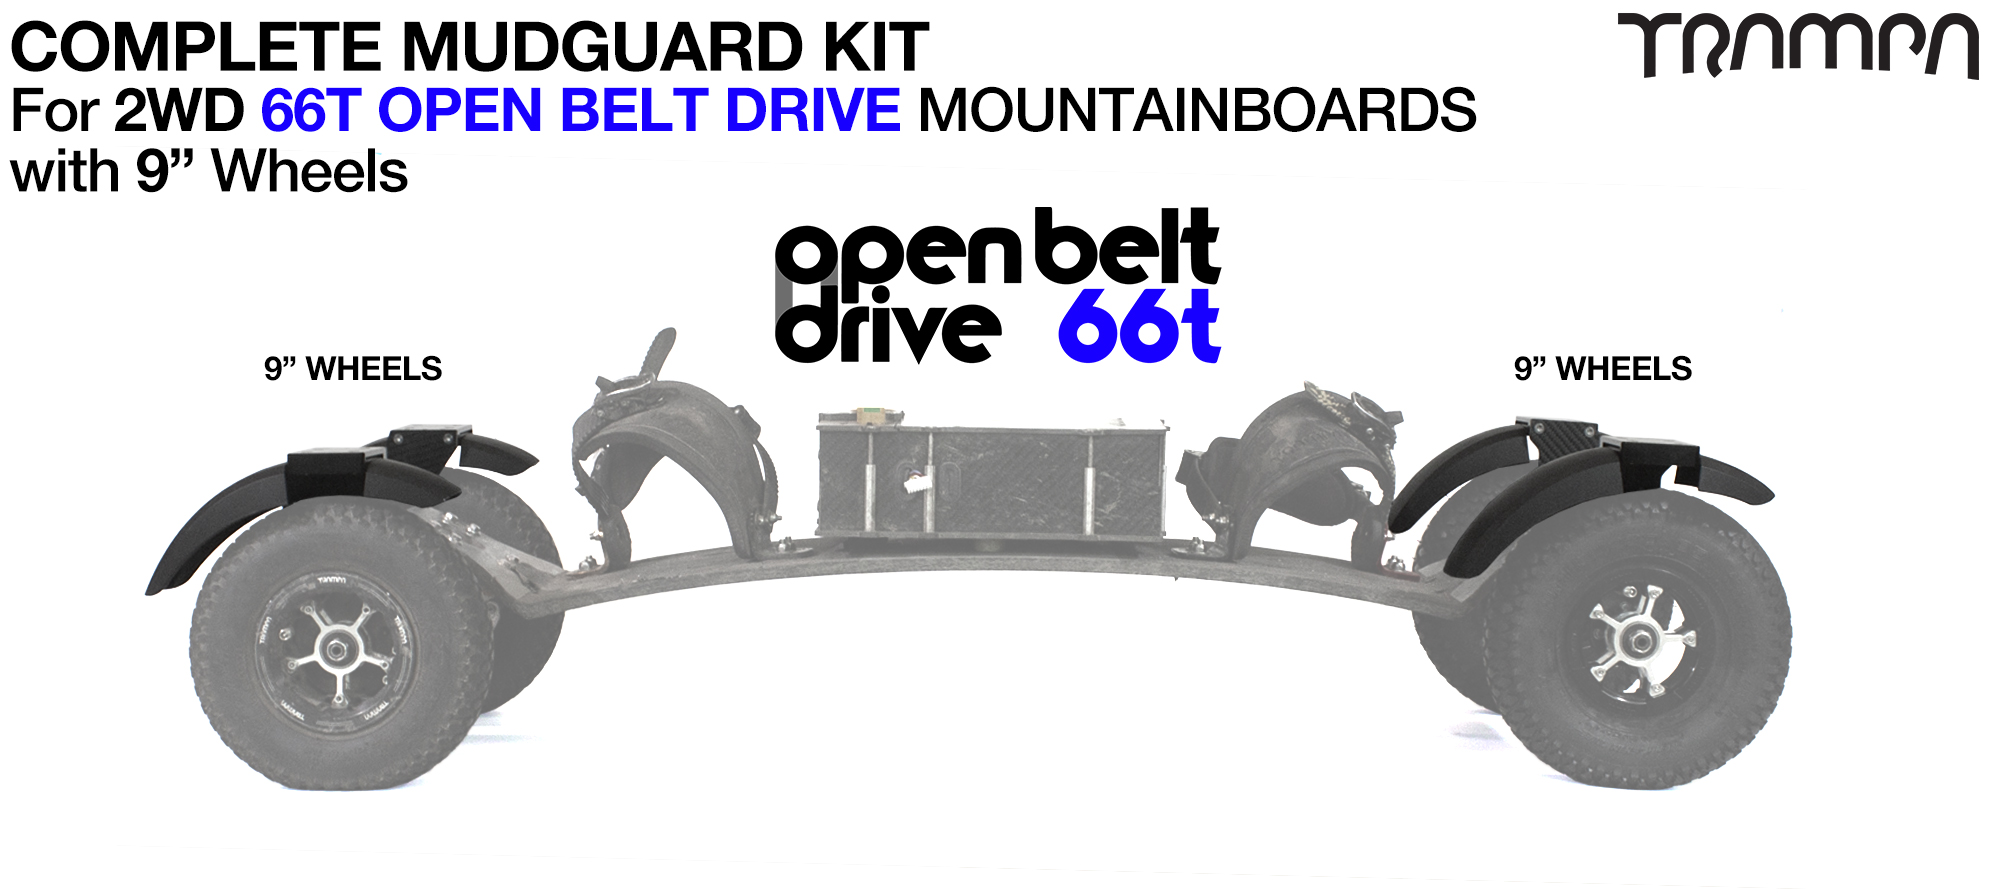 """Full Mudguard Kit for 2WD 66T OPEN BELT DRIVE Mountainboards - 9"""" Wheels All round"""